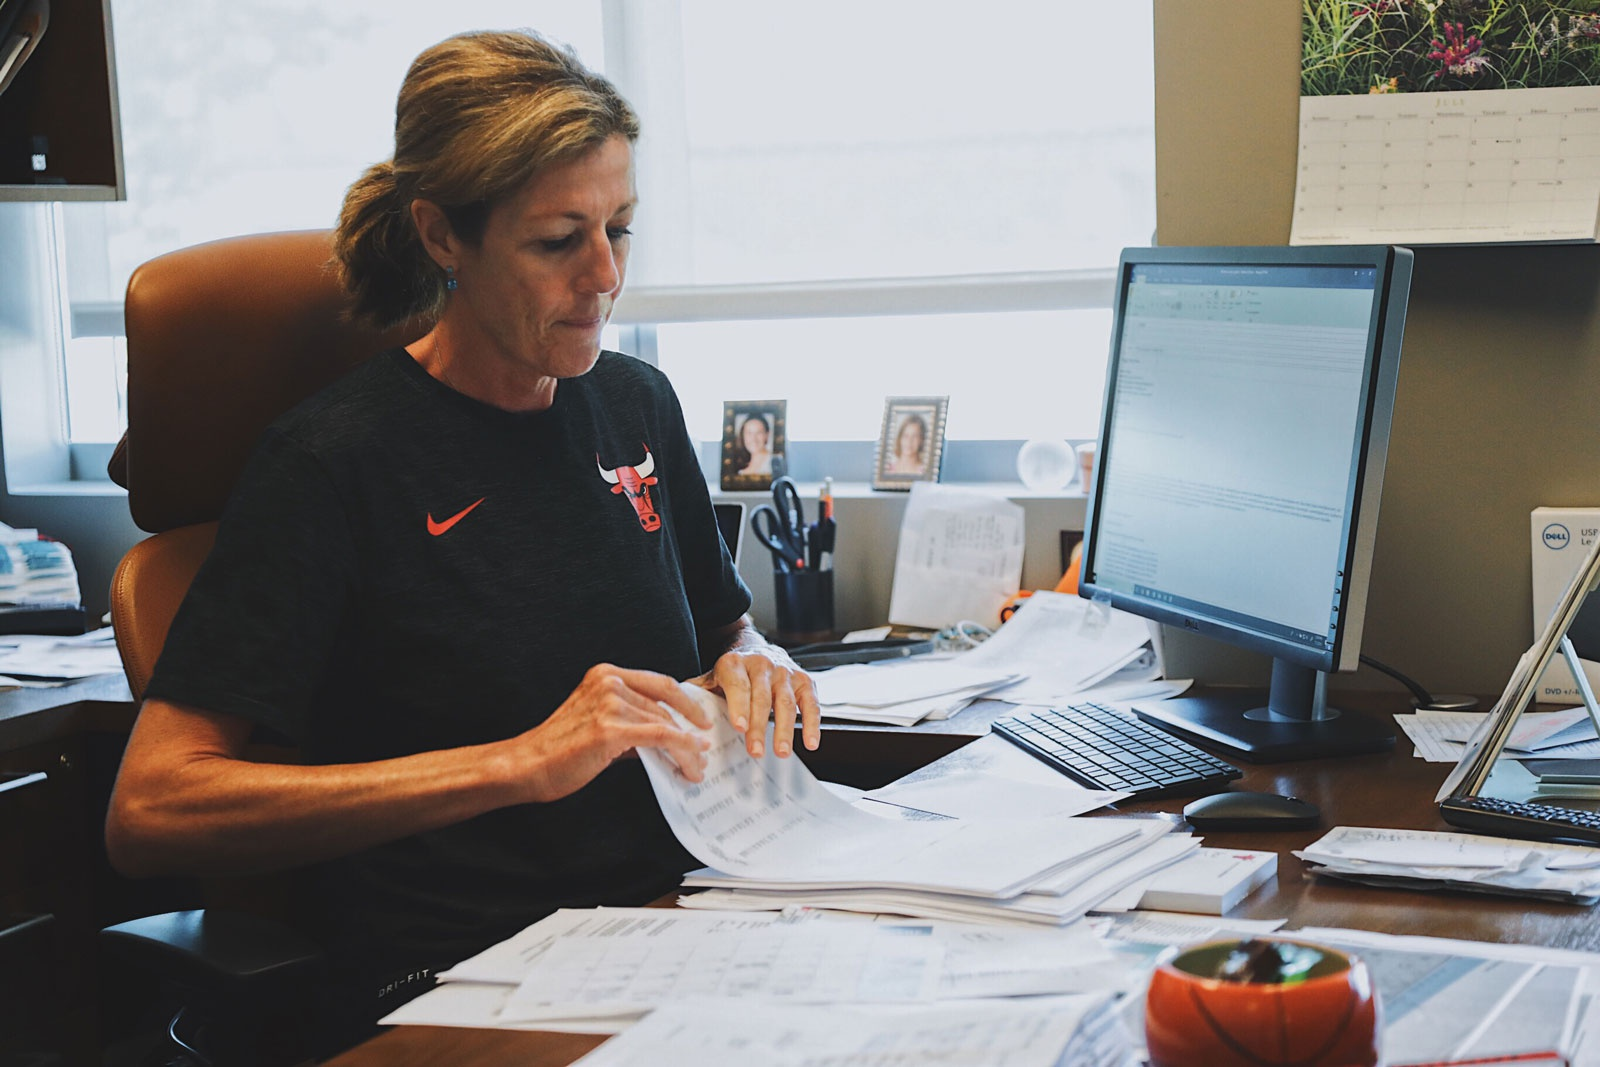 Karen Umlauf doing administrative work for the Bulls Operations.